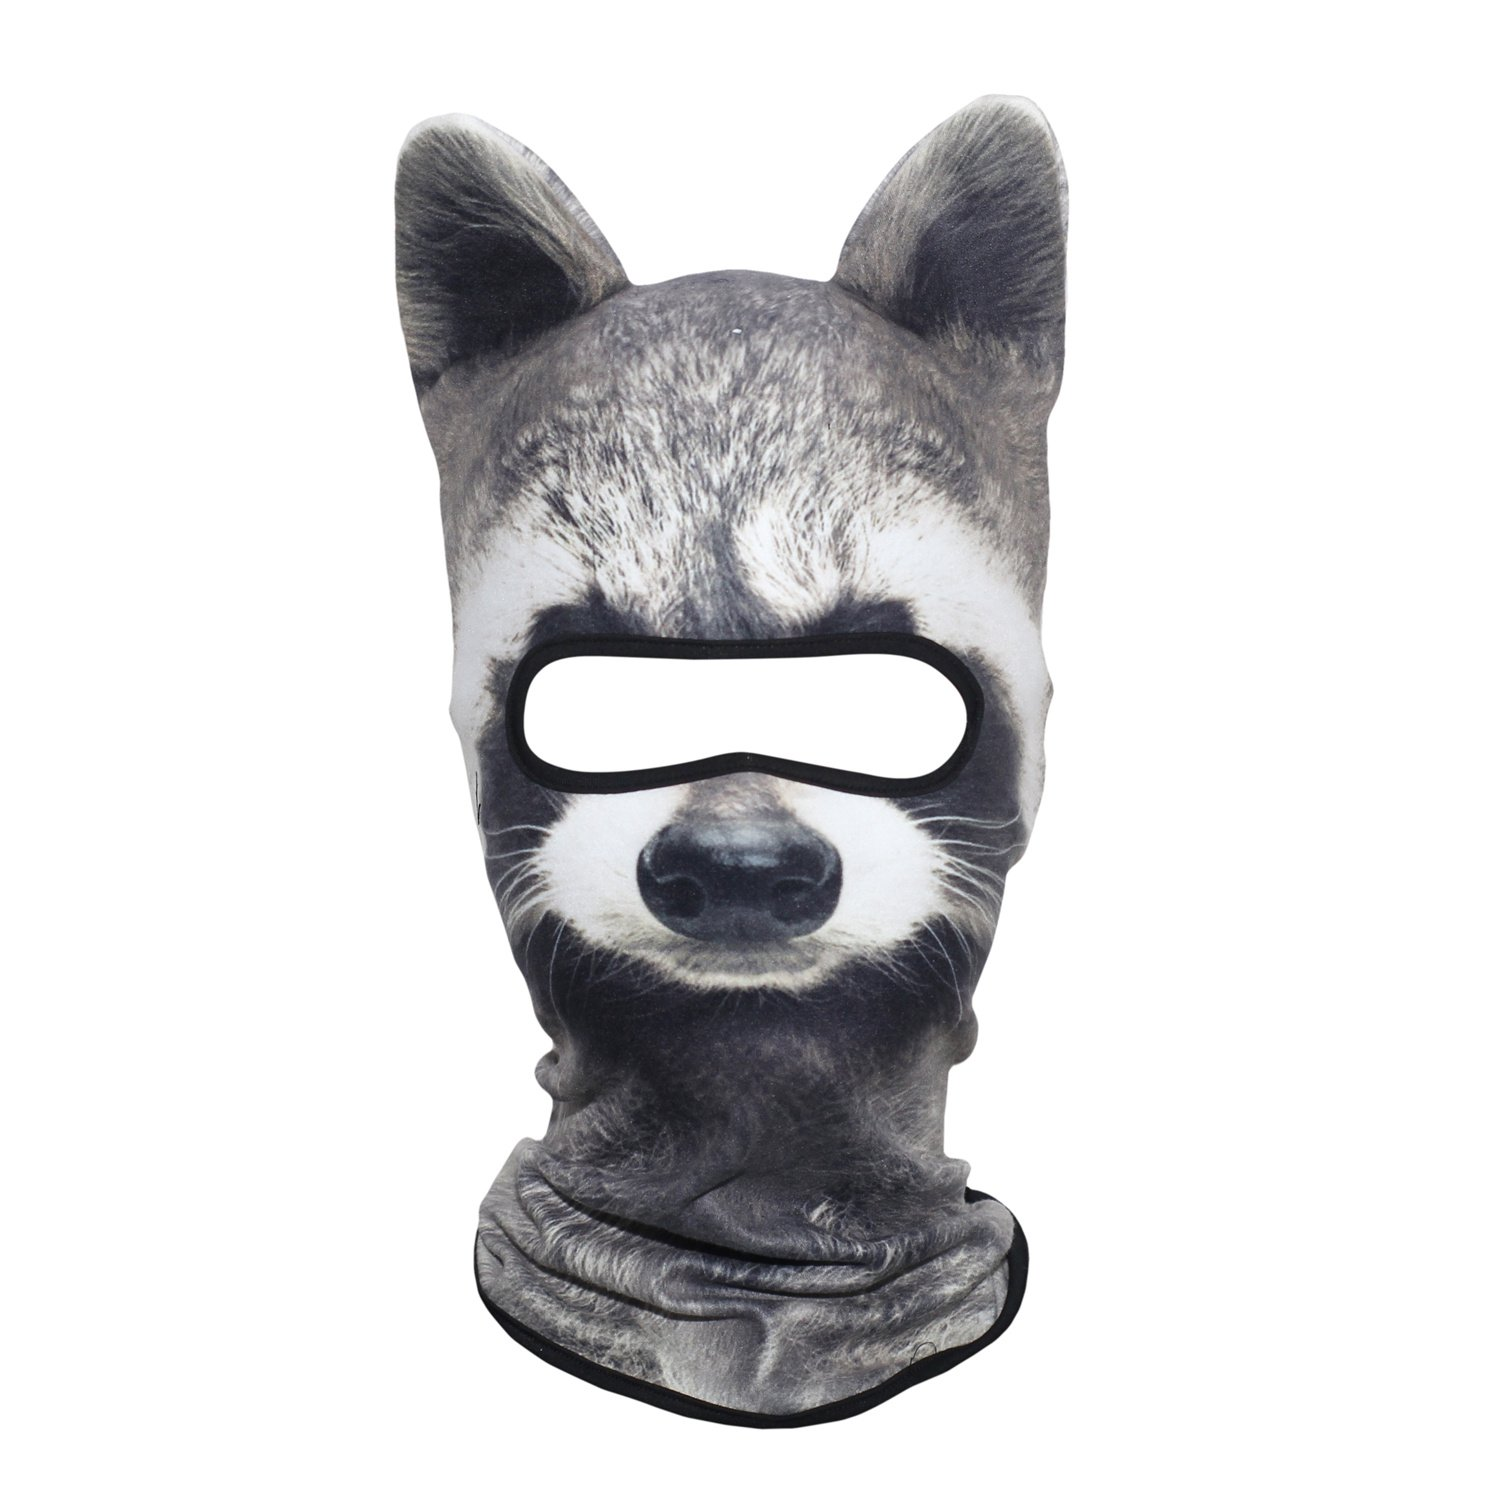 AXBXCX 3D Animal Ears Fleece Thermal Neck Warmer Windproof Hood Cover Face Mask Protection for Ski Snowboard Snowmobile Halloween Winter Cold Weather Raccoon MDD-16